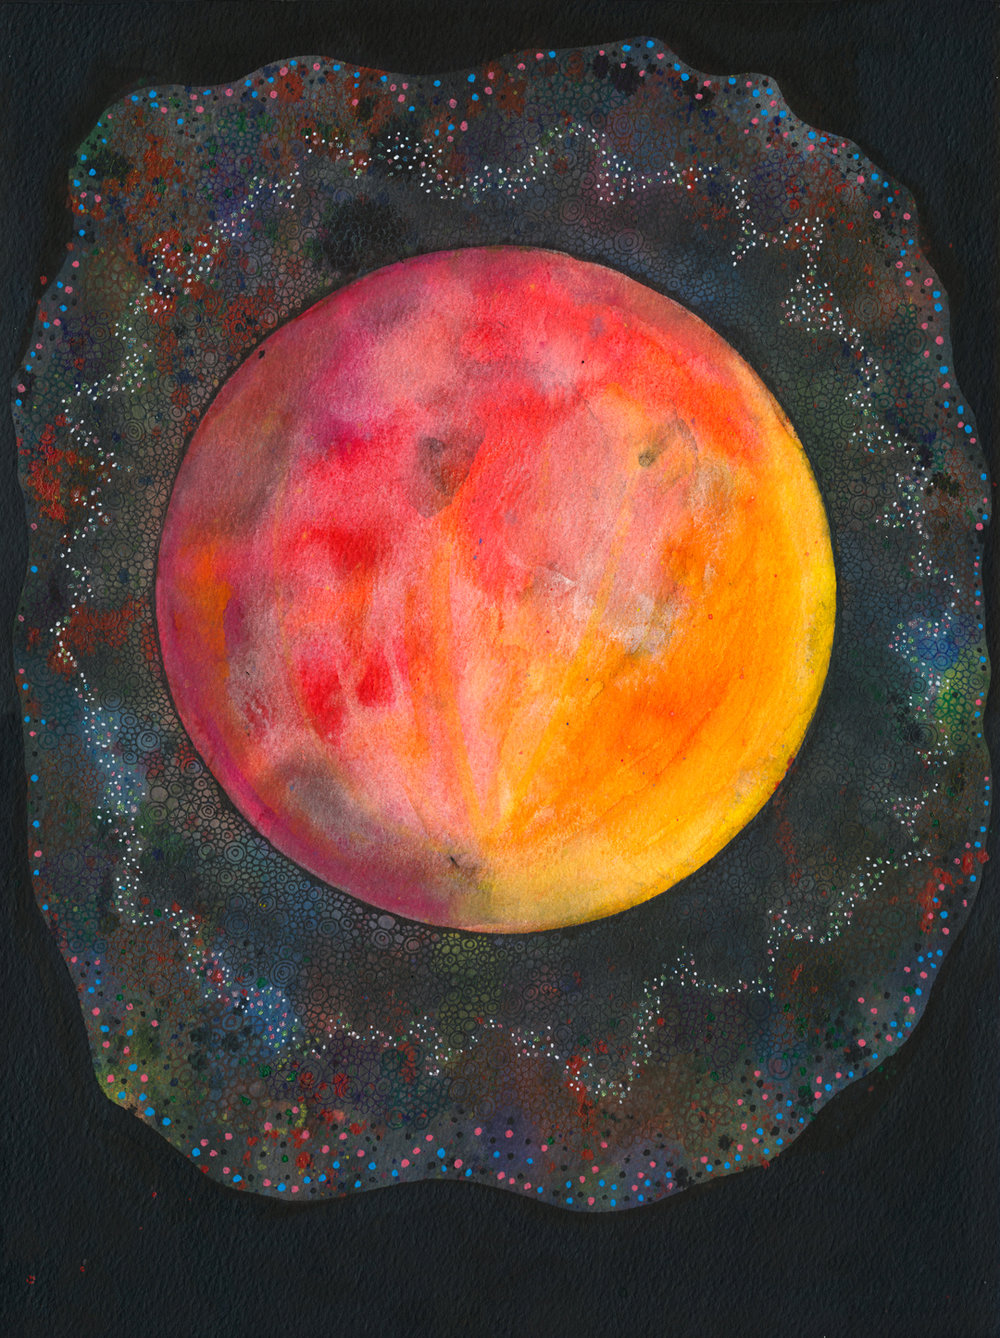 Lunar eclipse, ink on paper.